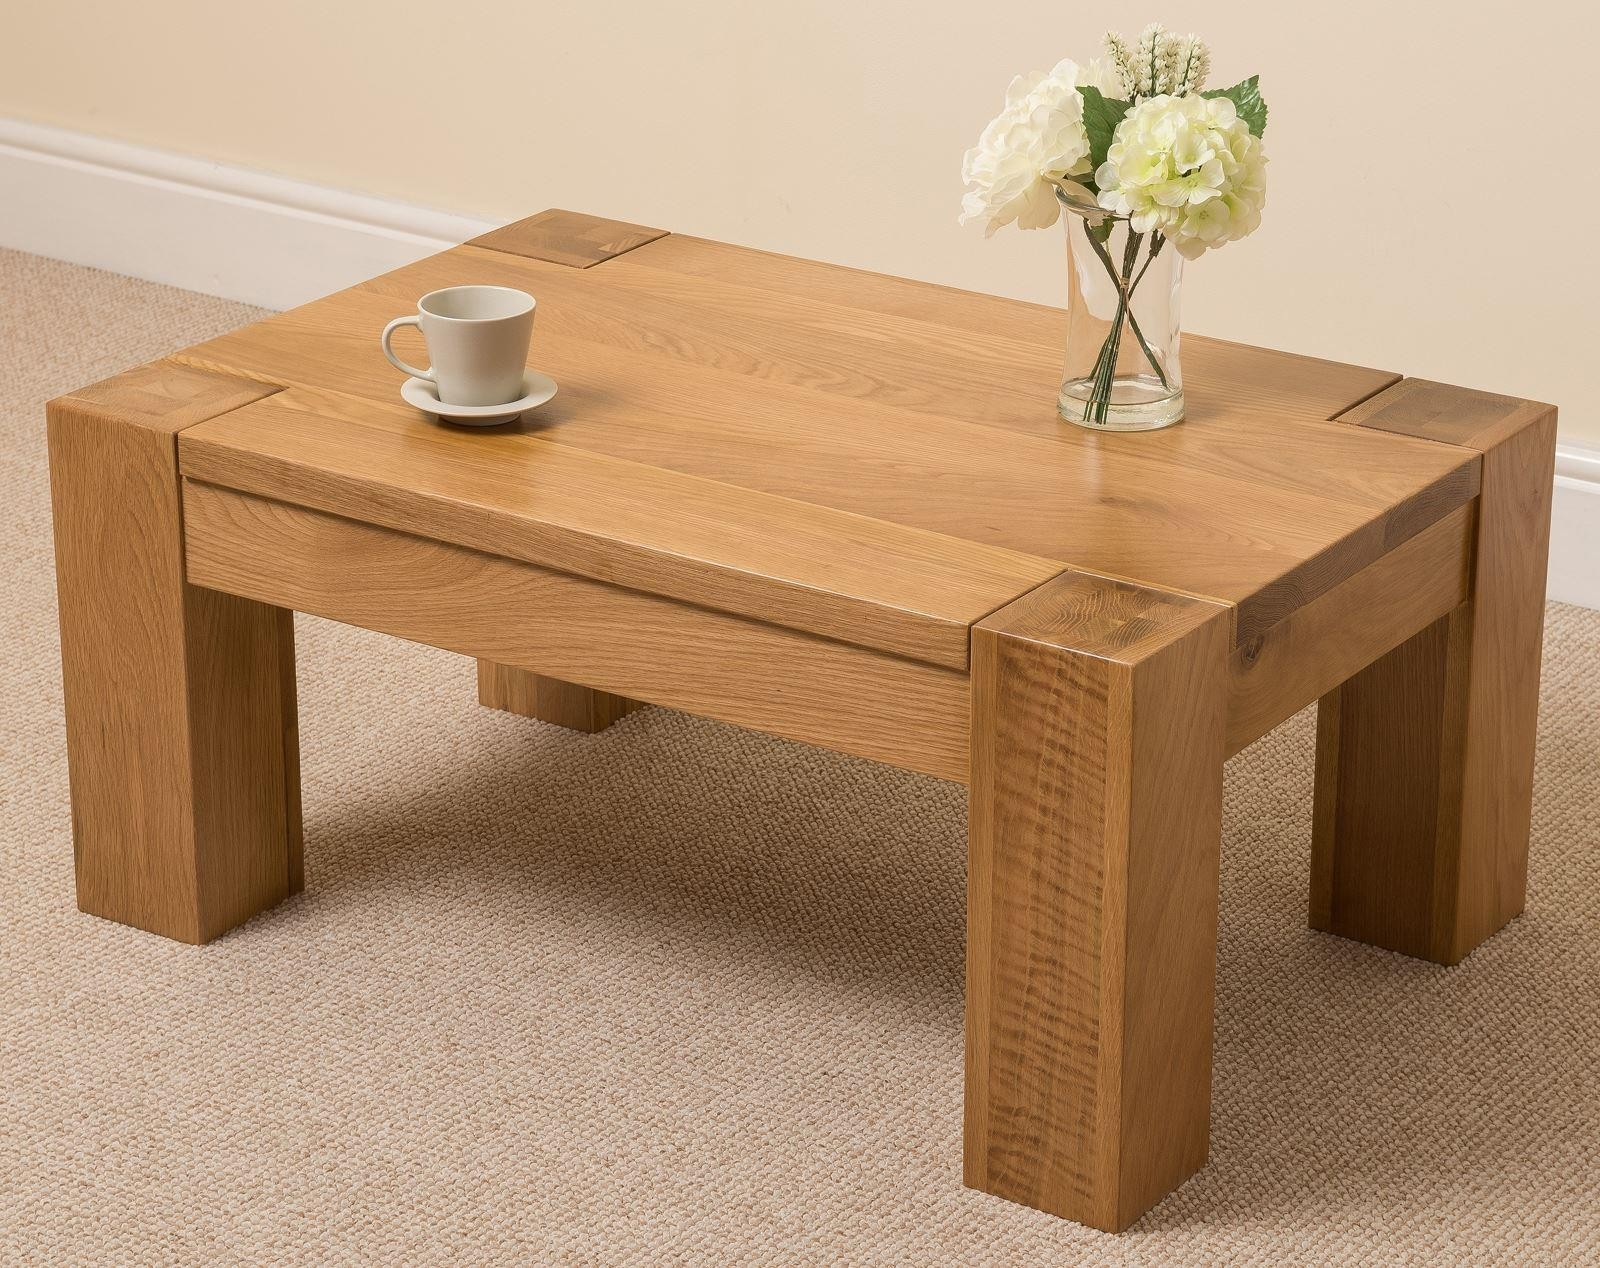 Solid wood coffee table design images photos pictures for Wooden coffee tables images